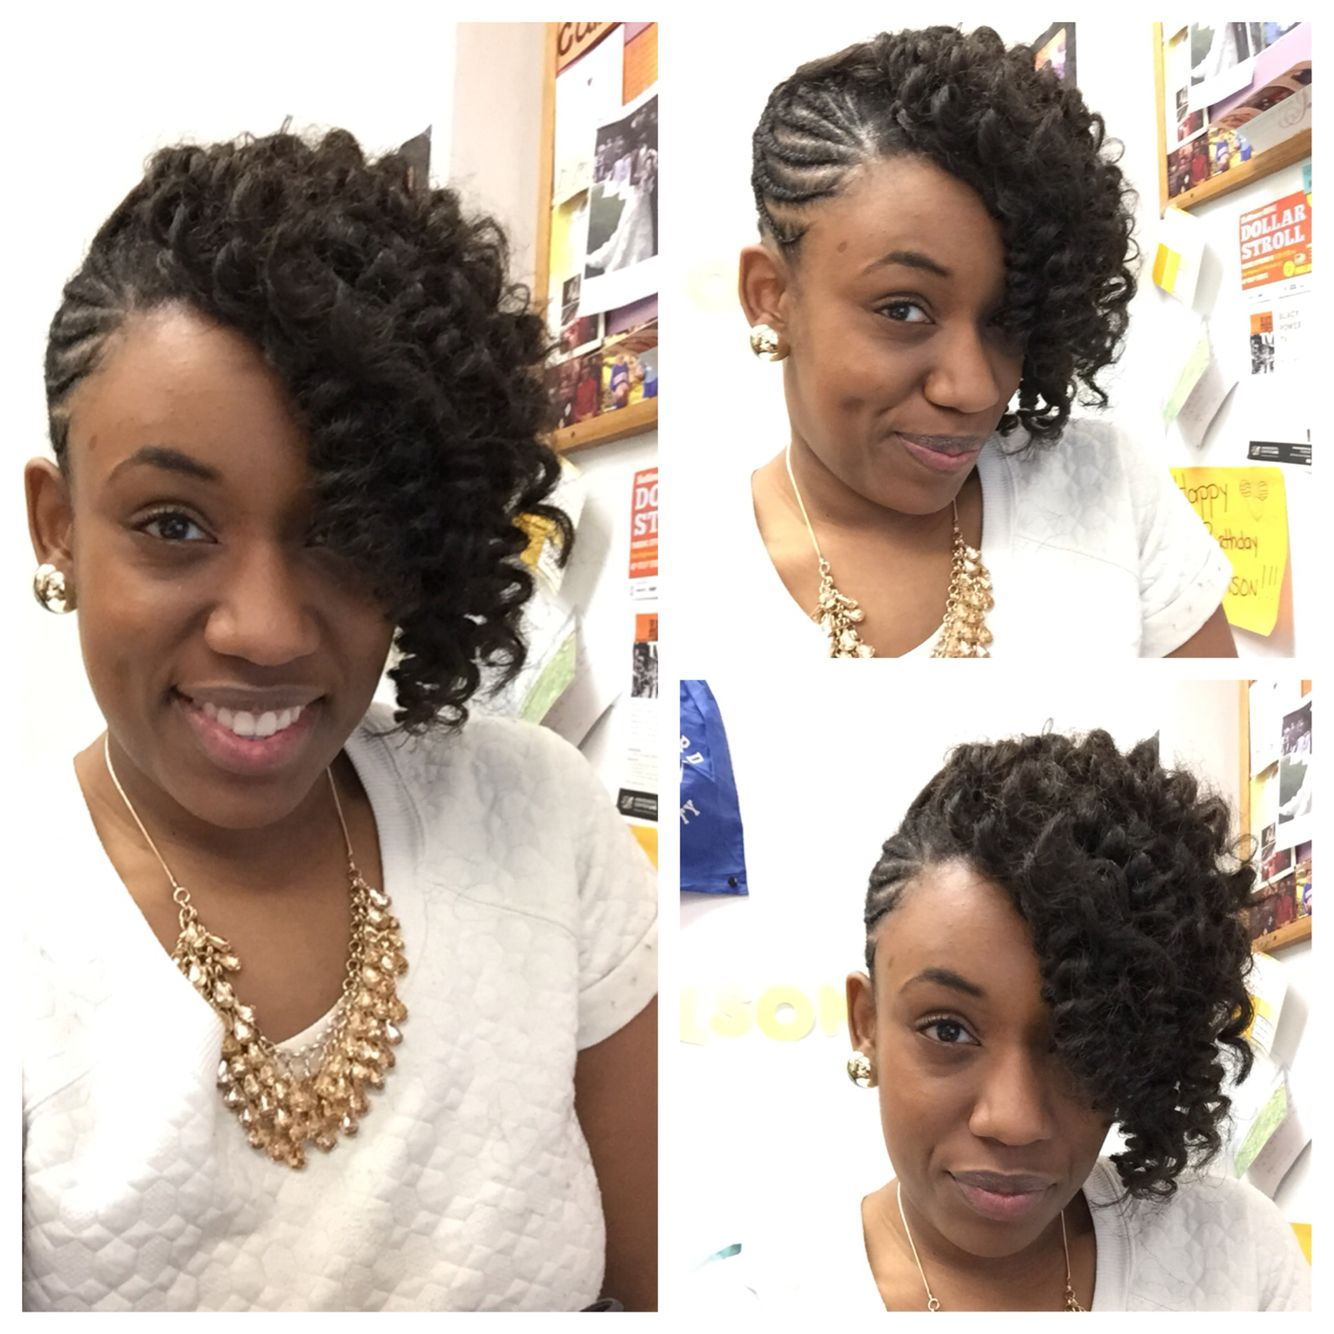 Braided updo with Kanekalon hair crocheted and curled to